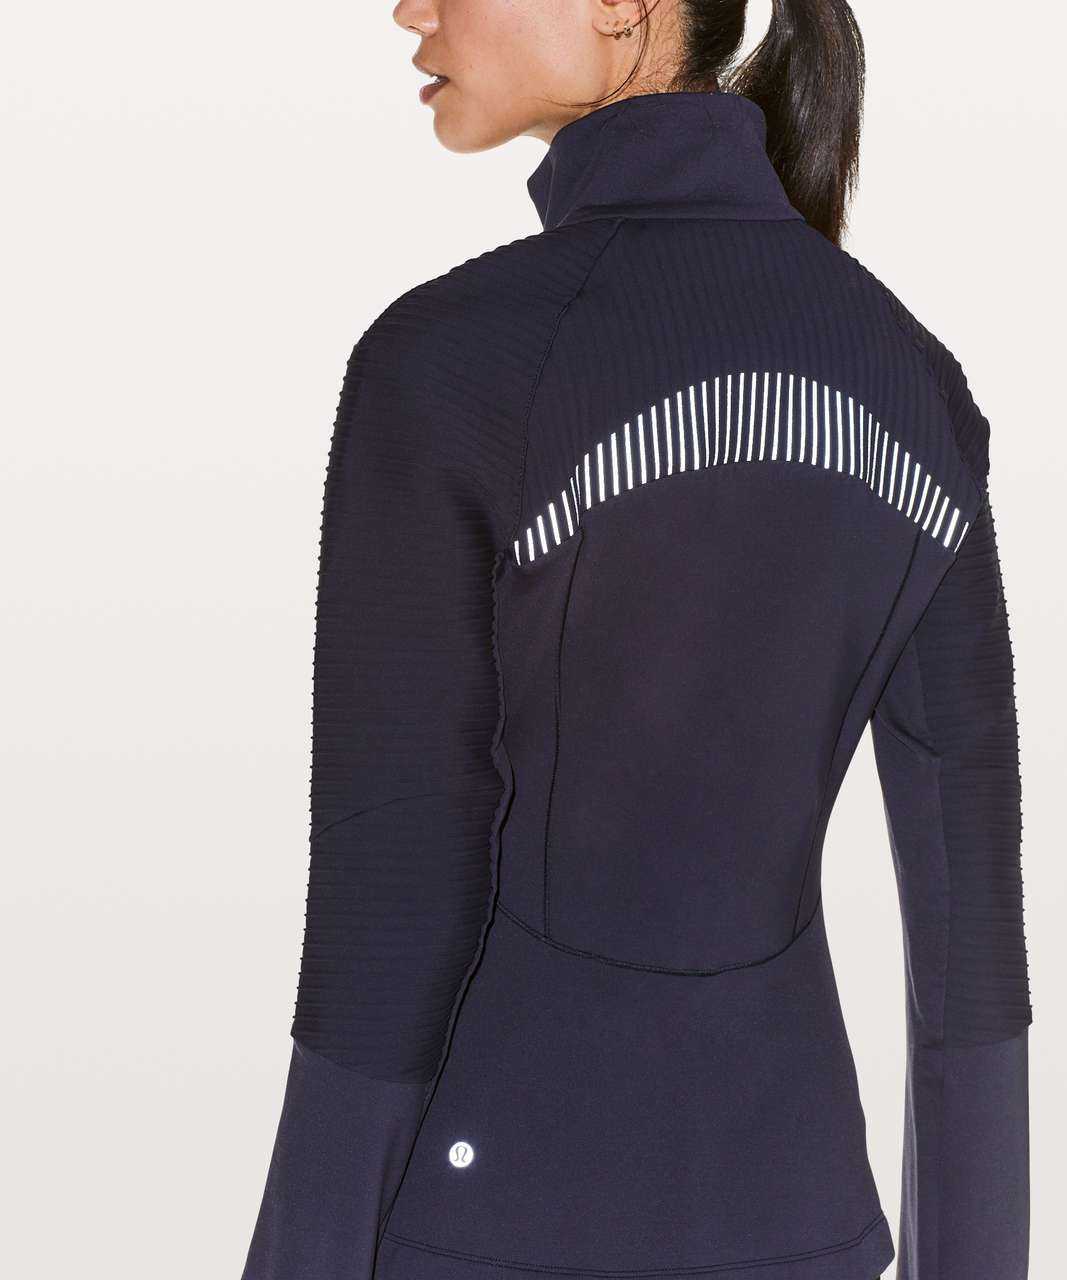 Lululemon Chill Going Strong Jacket - Midnight Navy